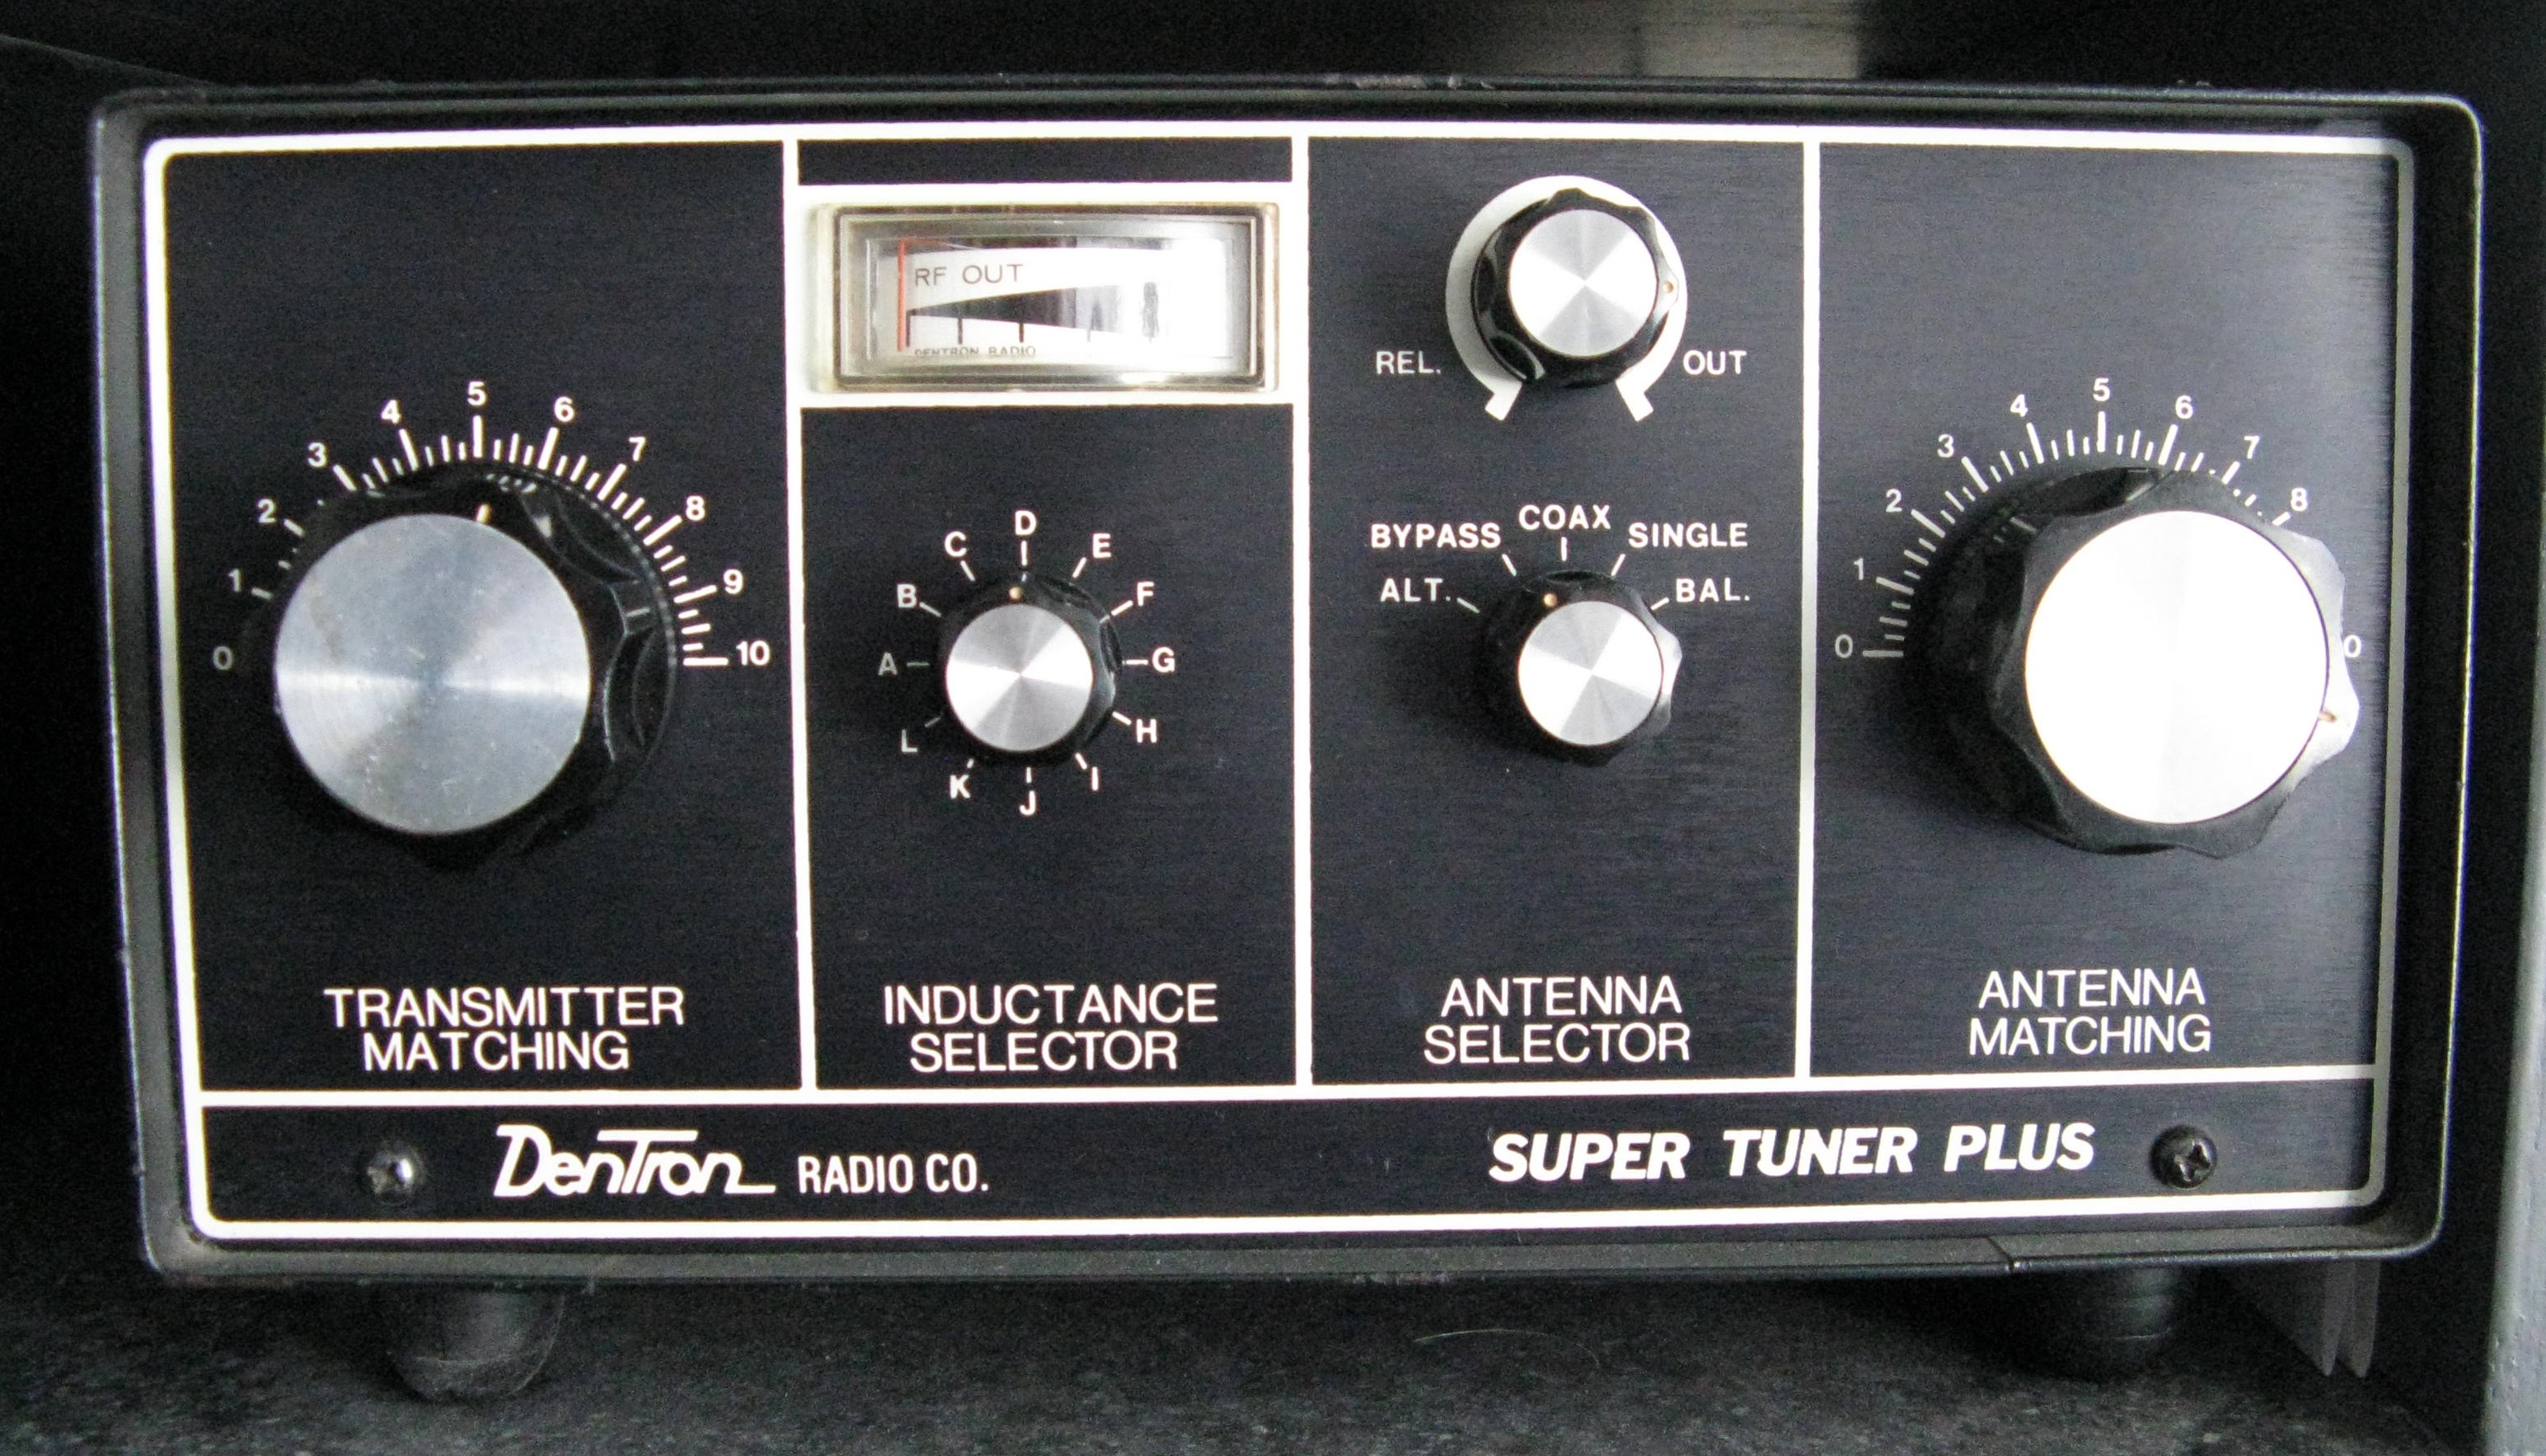 Dentron Super Tuner Plus